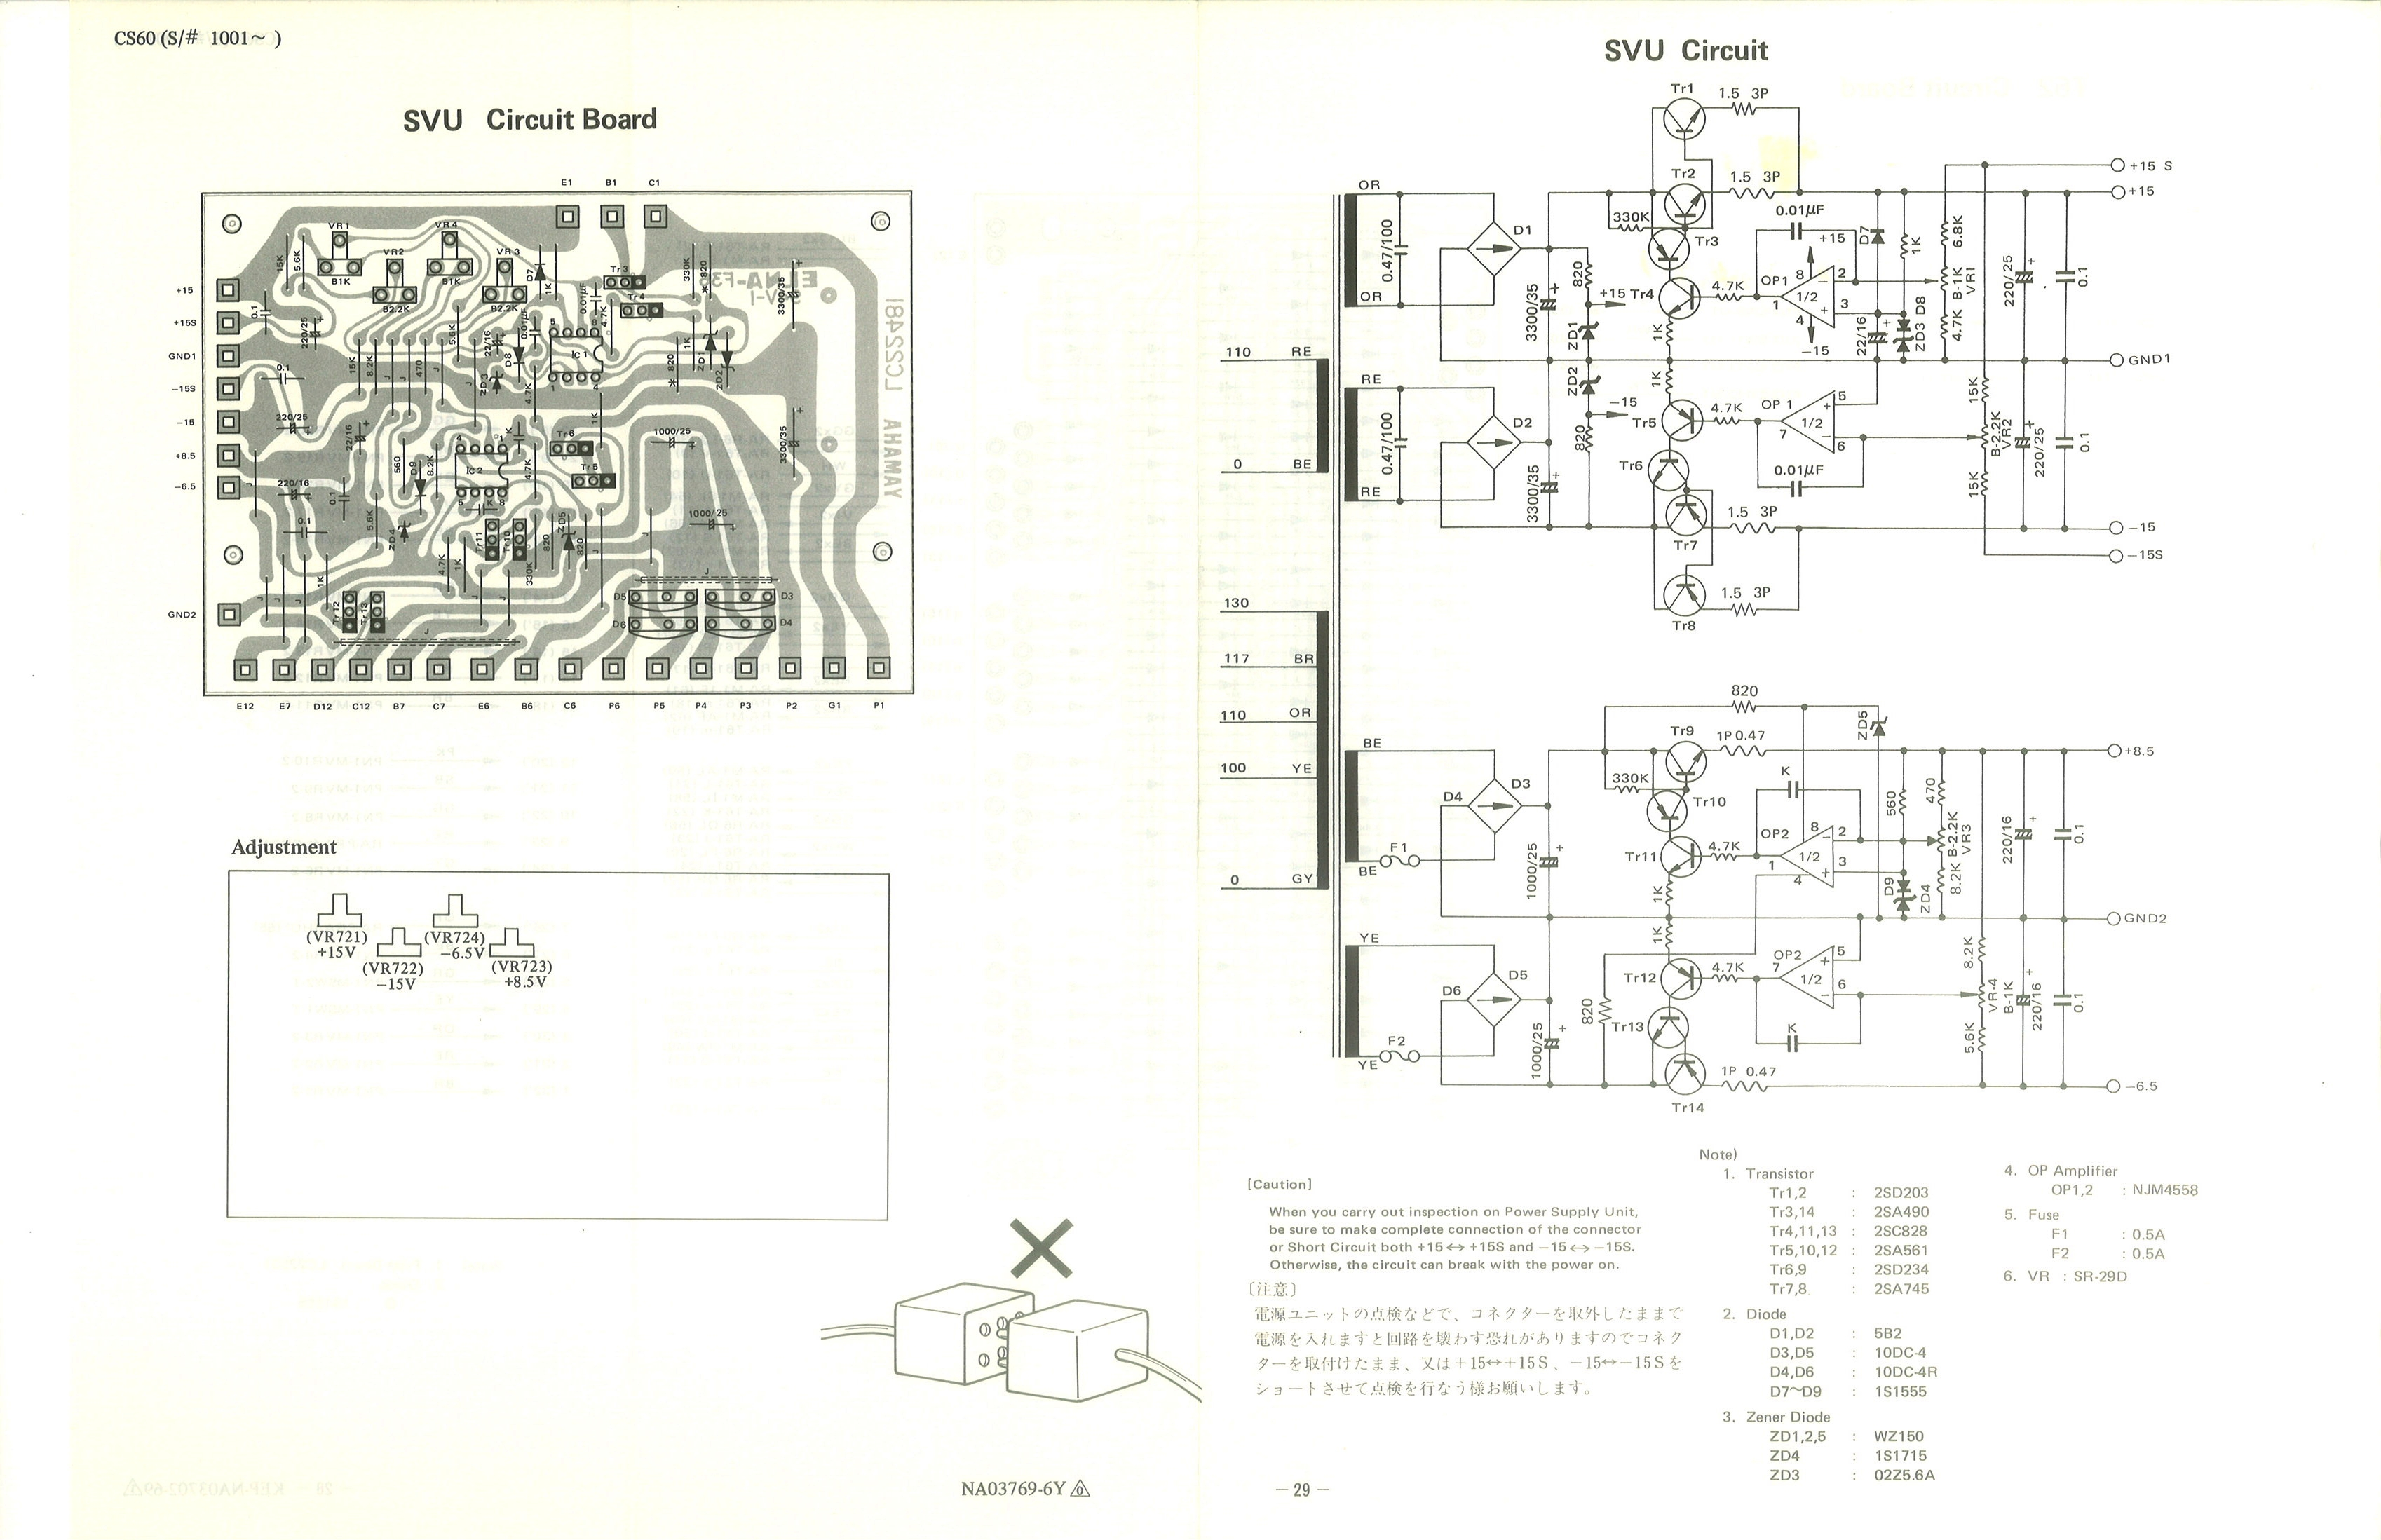 Tr4 Wiring Diagram Diagrams For Tr And Tra Triumph Tr4a Yamaha Manual Image Cs 60 Service On